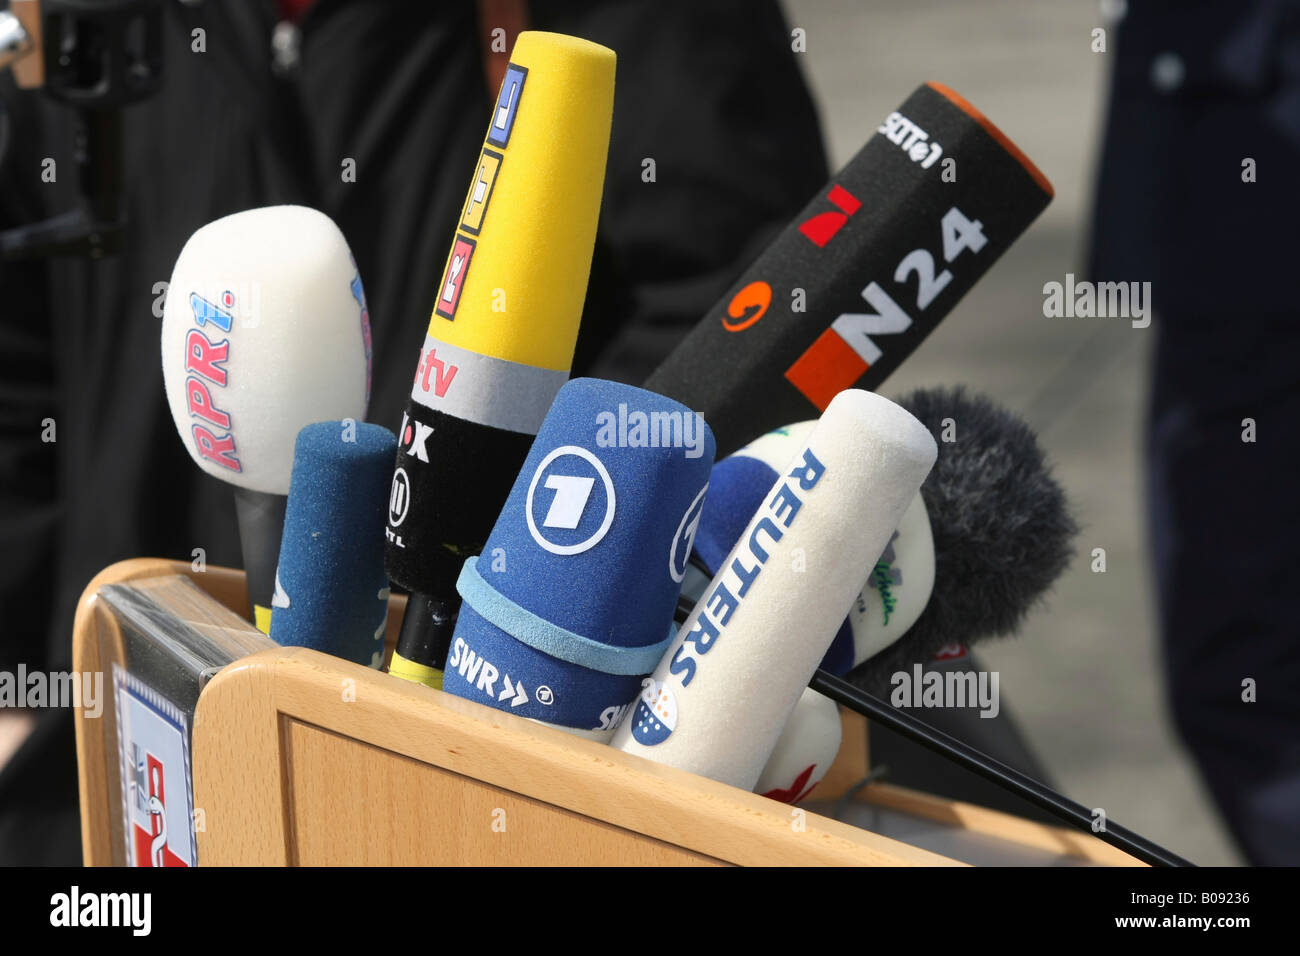 German press microphones attached to a lectern - Stock Image